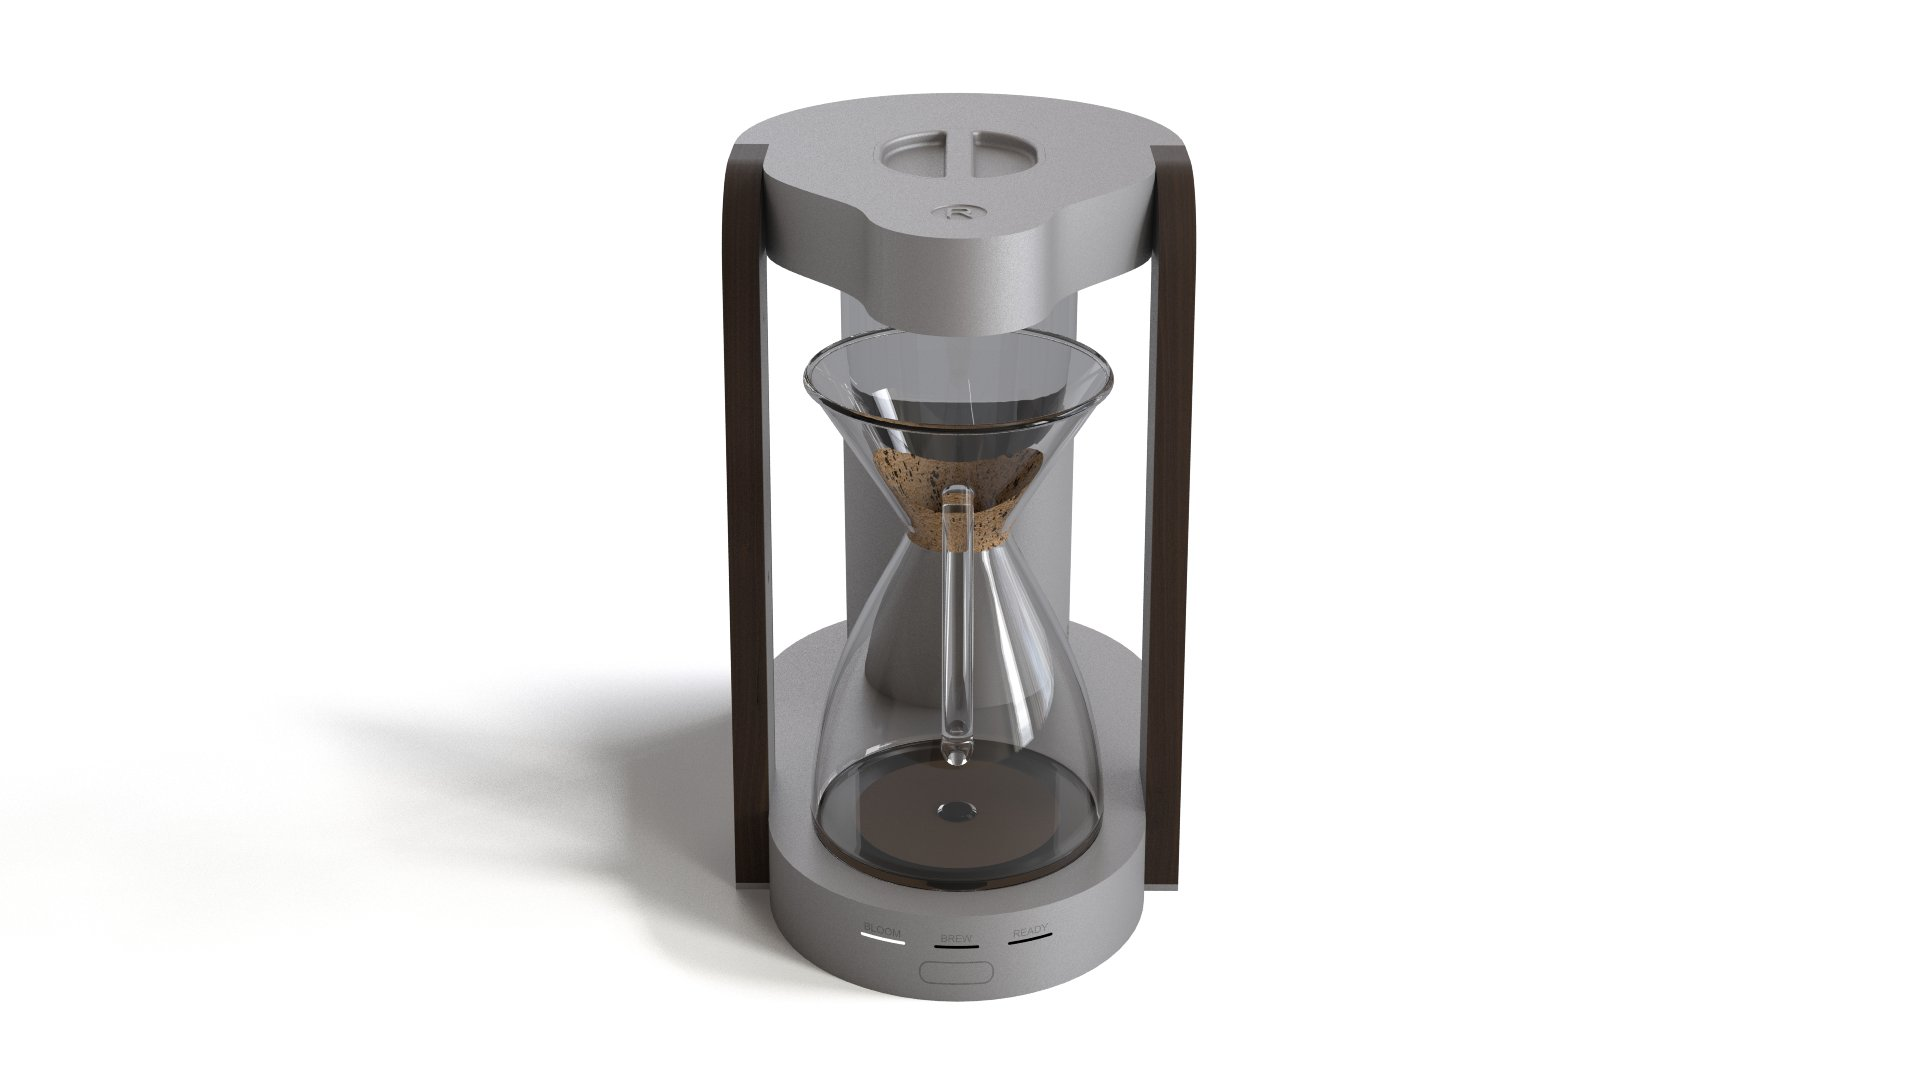 RATIO Coffee Maker